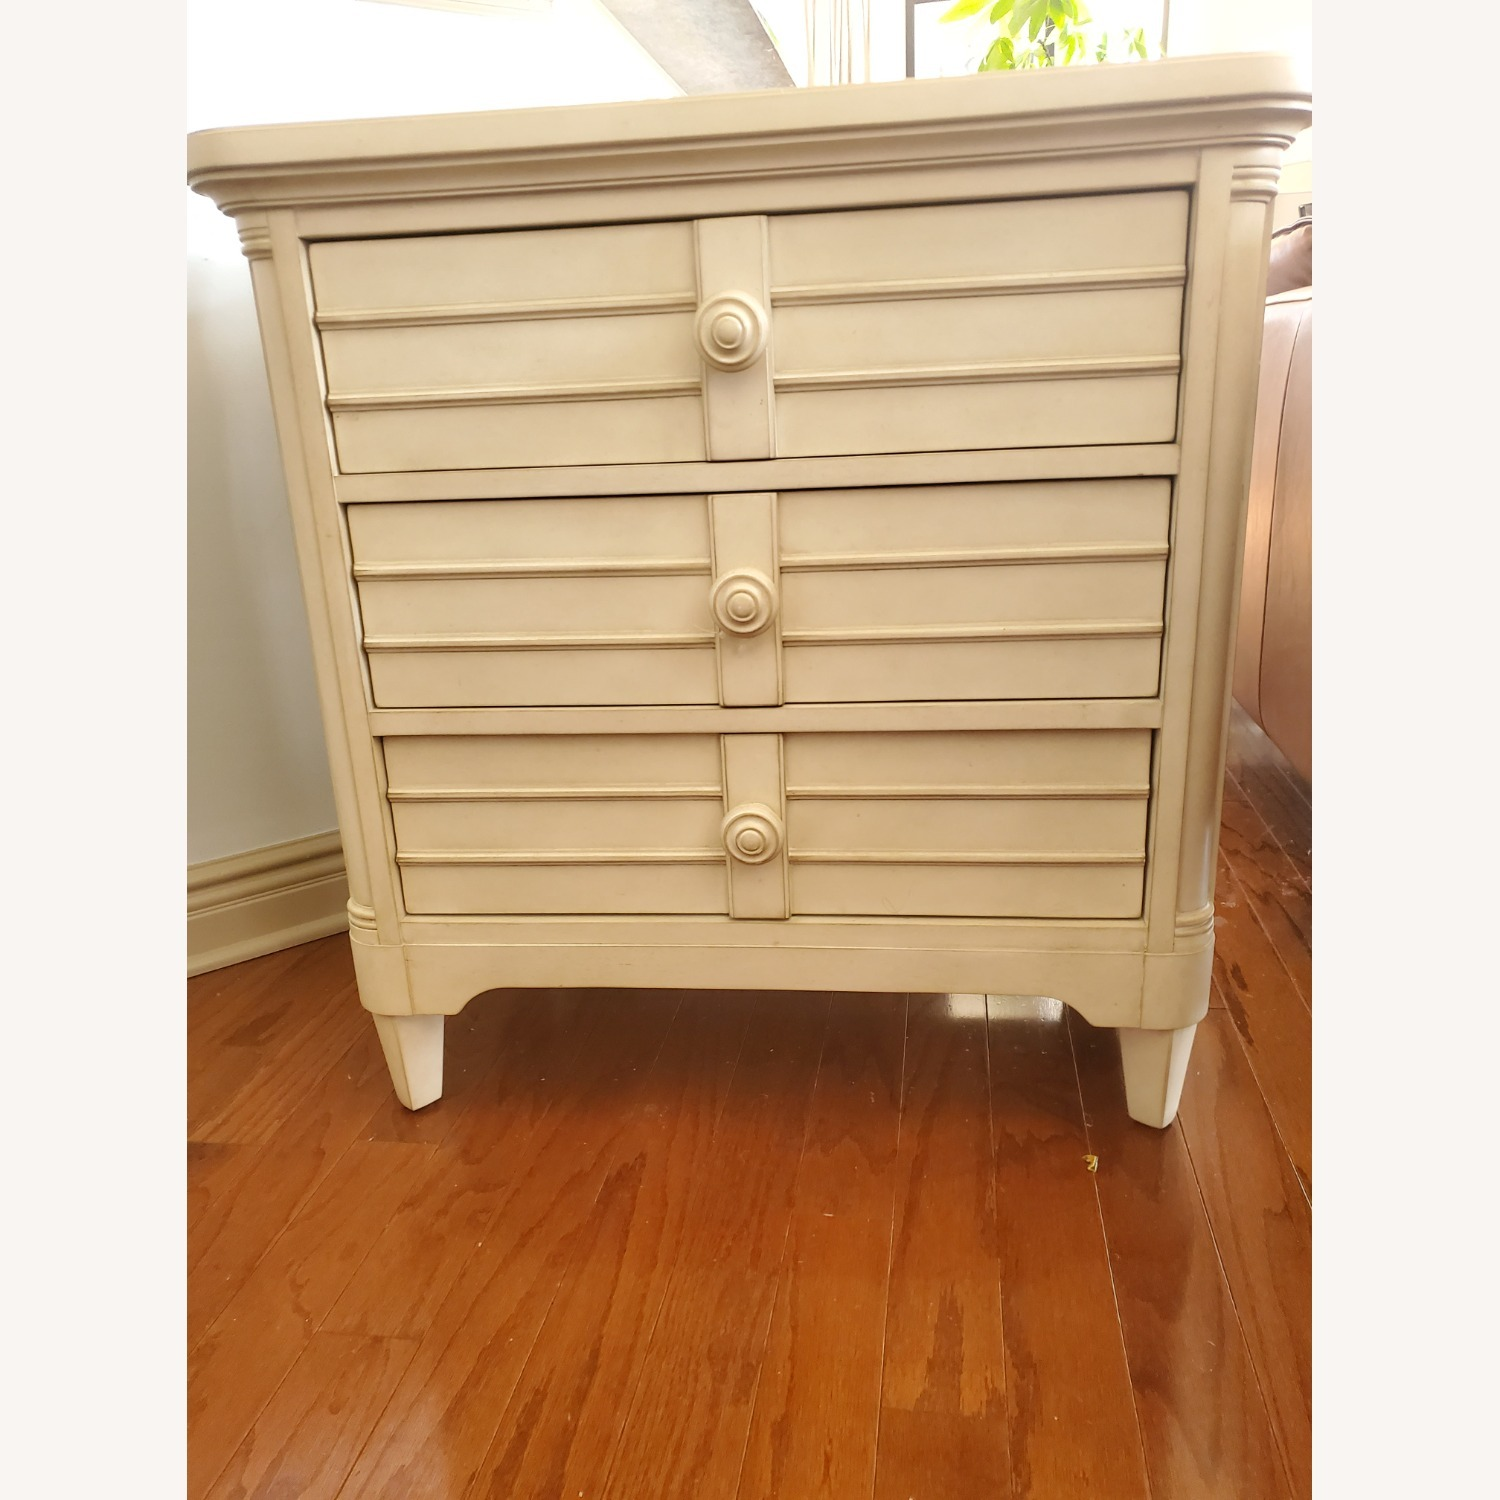 Stanley Sommerset Ivory 3 Drawer Nightstands - image-3